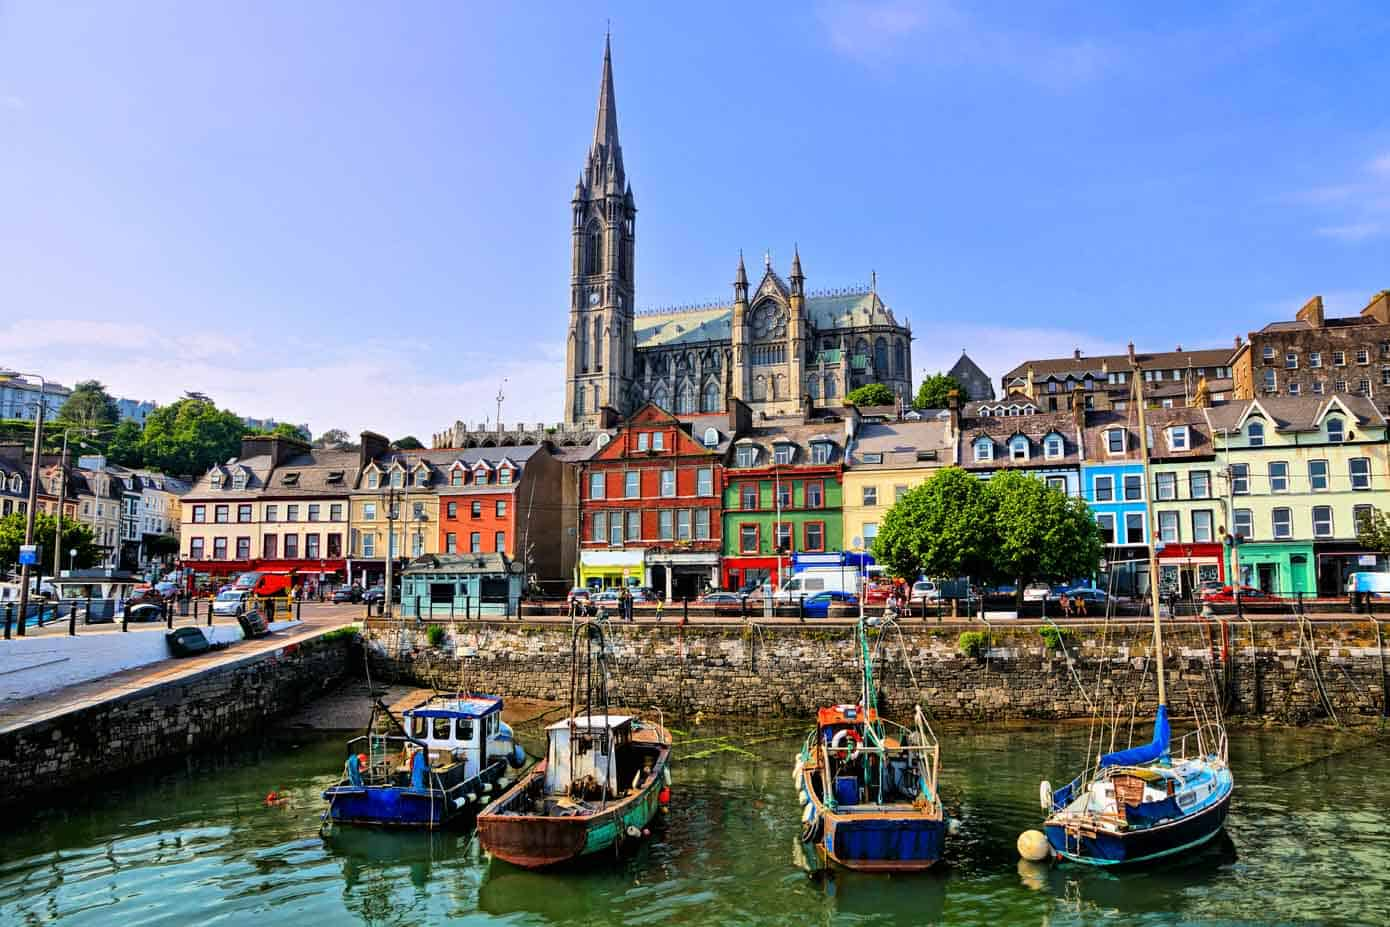 Colorful buildings and old boats with cathedral in background in the harbor of Cobh, County Cork, Ireland.